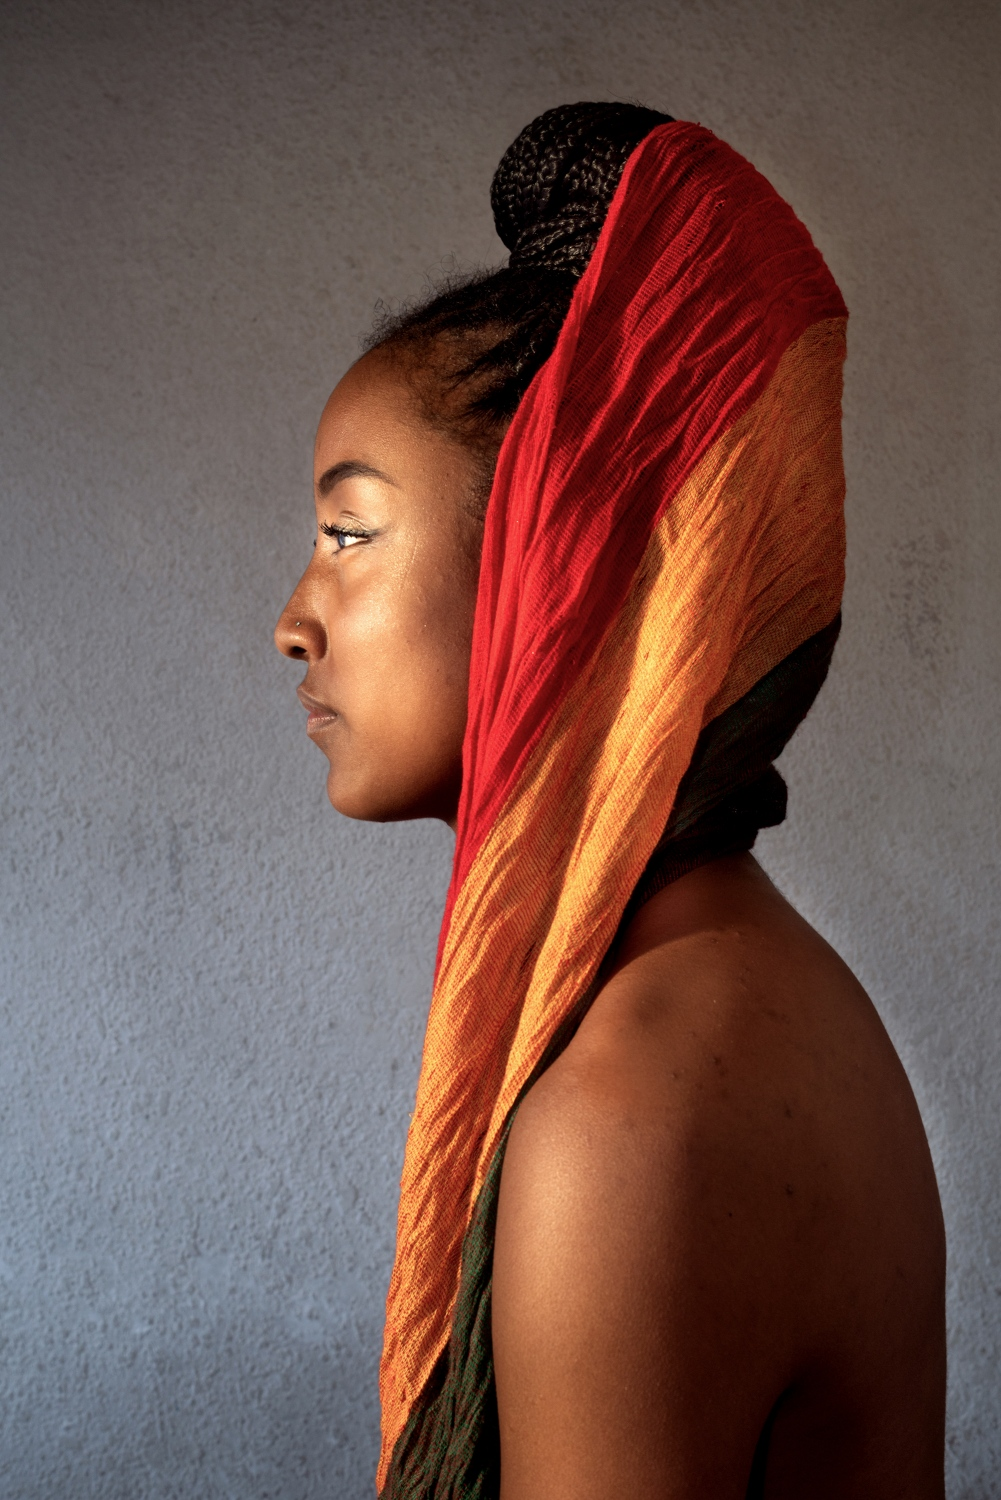 Katherine Ramos, 23, a member of the pan-African activist group Addis Ababa, keeps alive the traditions her grandmothers taught her on the use of turbans. She wears hers as a loose crown. Quito, Ecuador, 2019.  Johis Alarcón